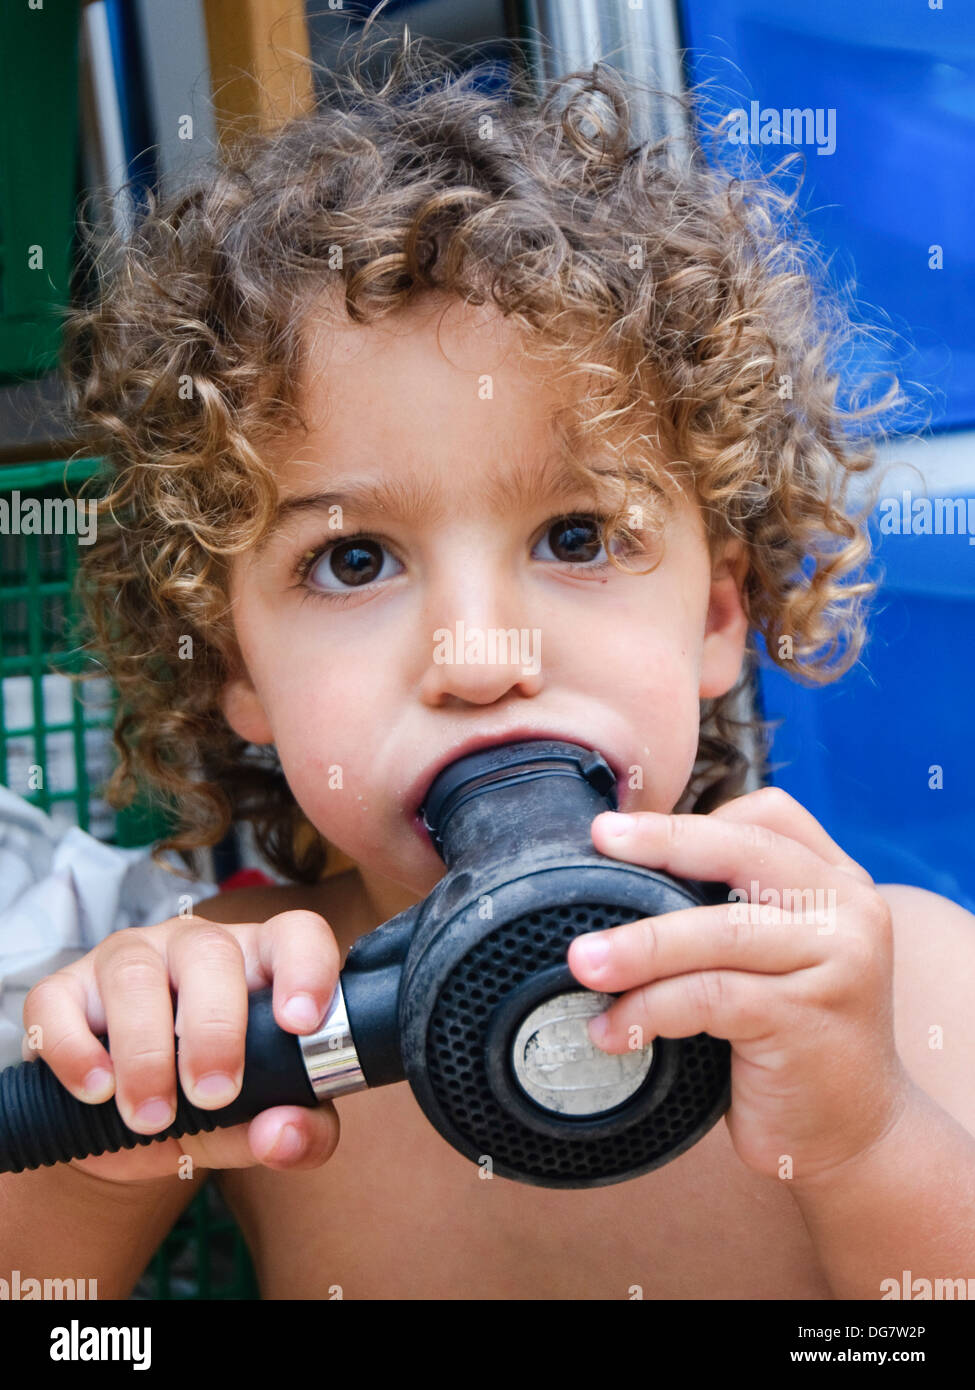 Young boy with a scuba diving mouthpiece in his mouth Model release available - Stock Image